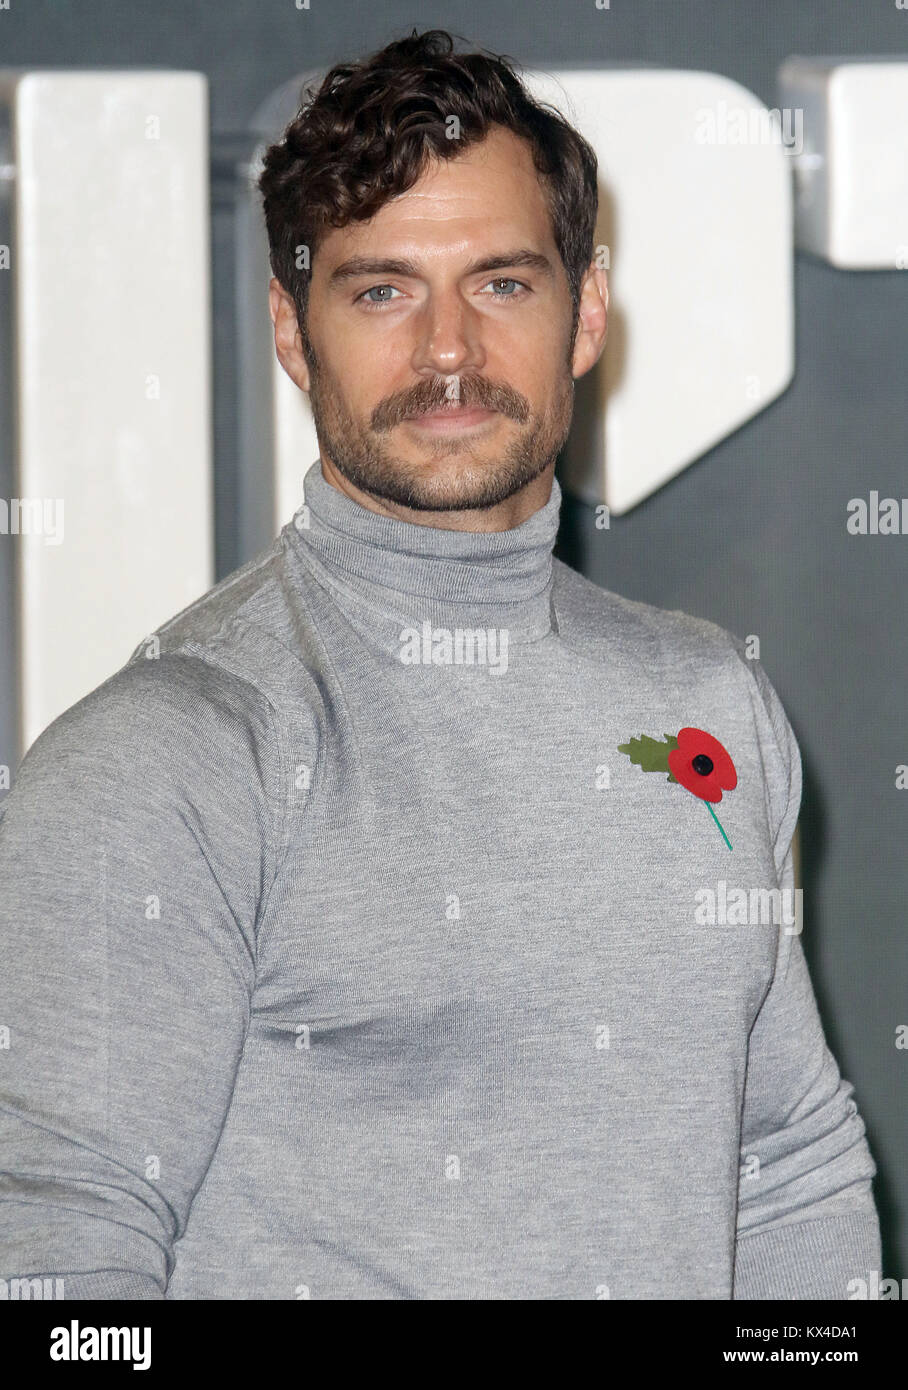 Nov 04, 2017 - Henry Cavill attending 'Justice League' Photocall, The College, Southampton Row in London, - Stock Image